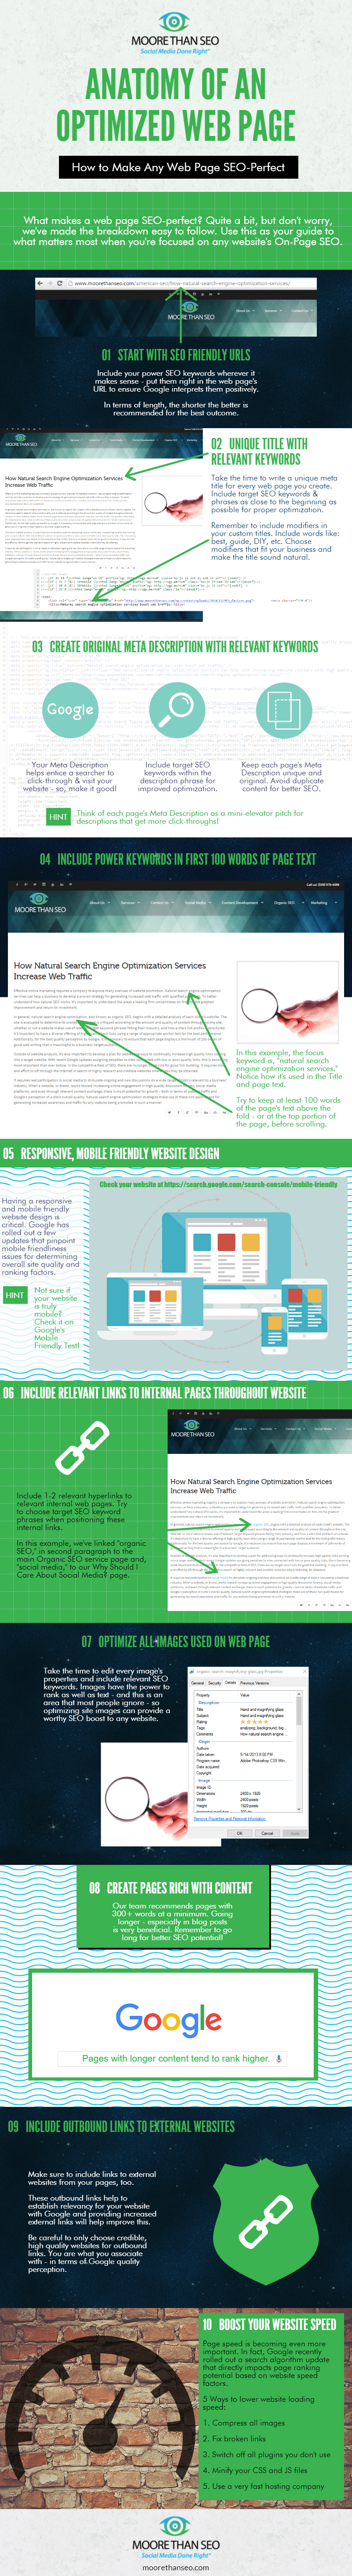 Infographic shows website optimization basics